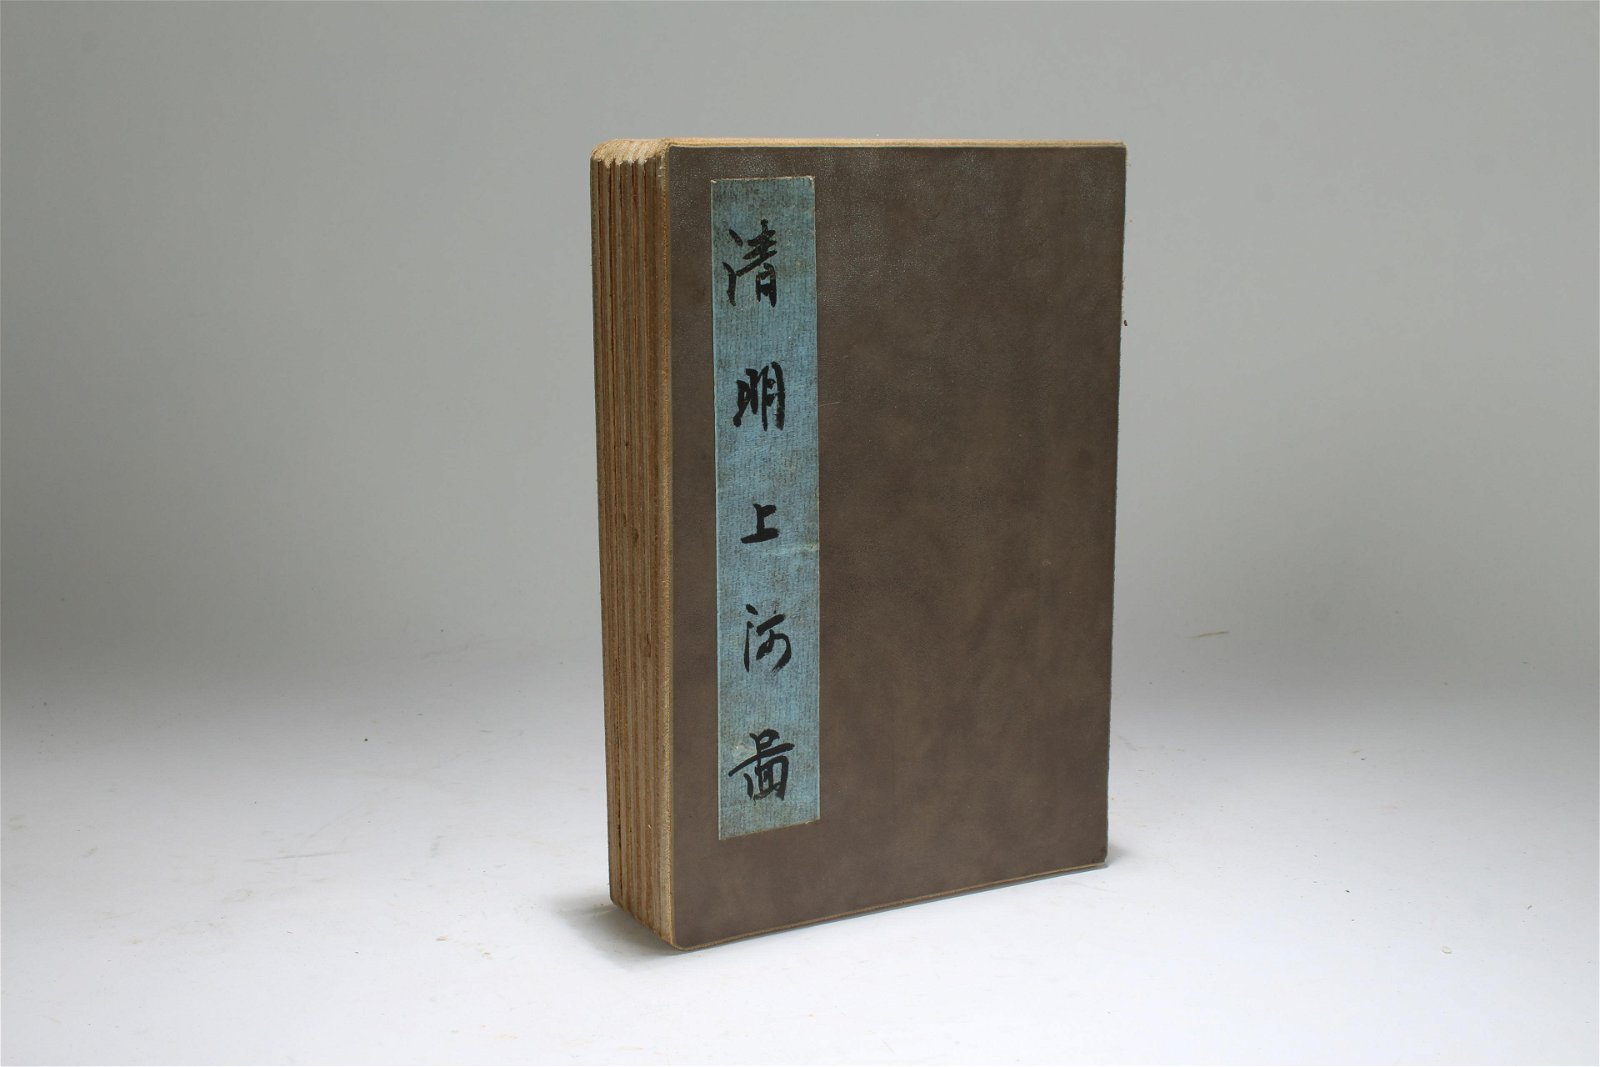 A Chinese Market-space Display Book